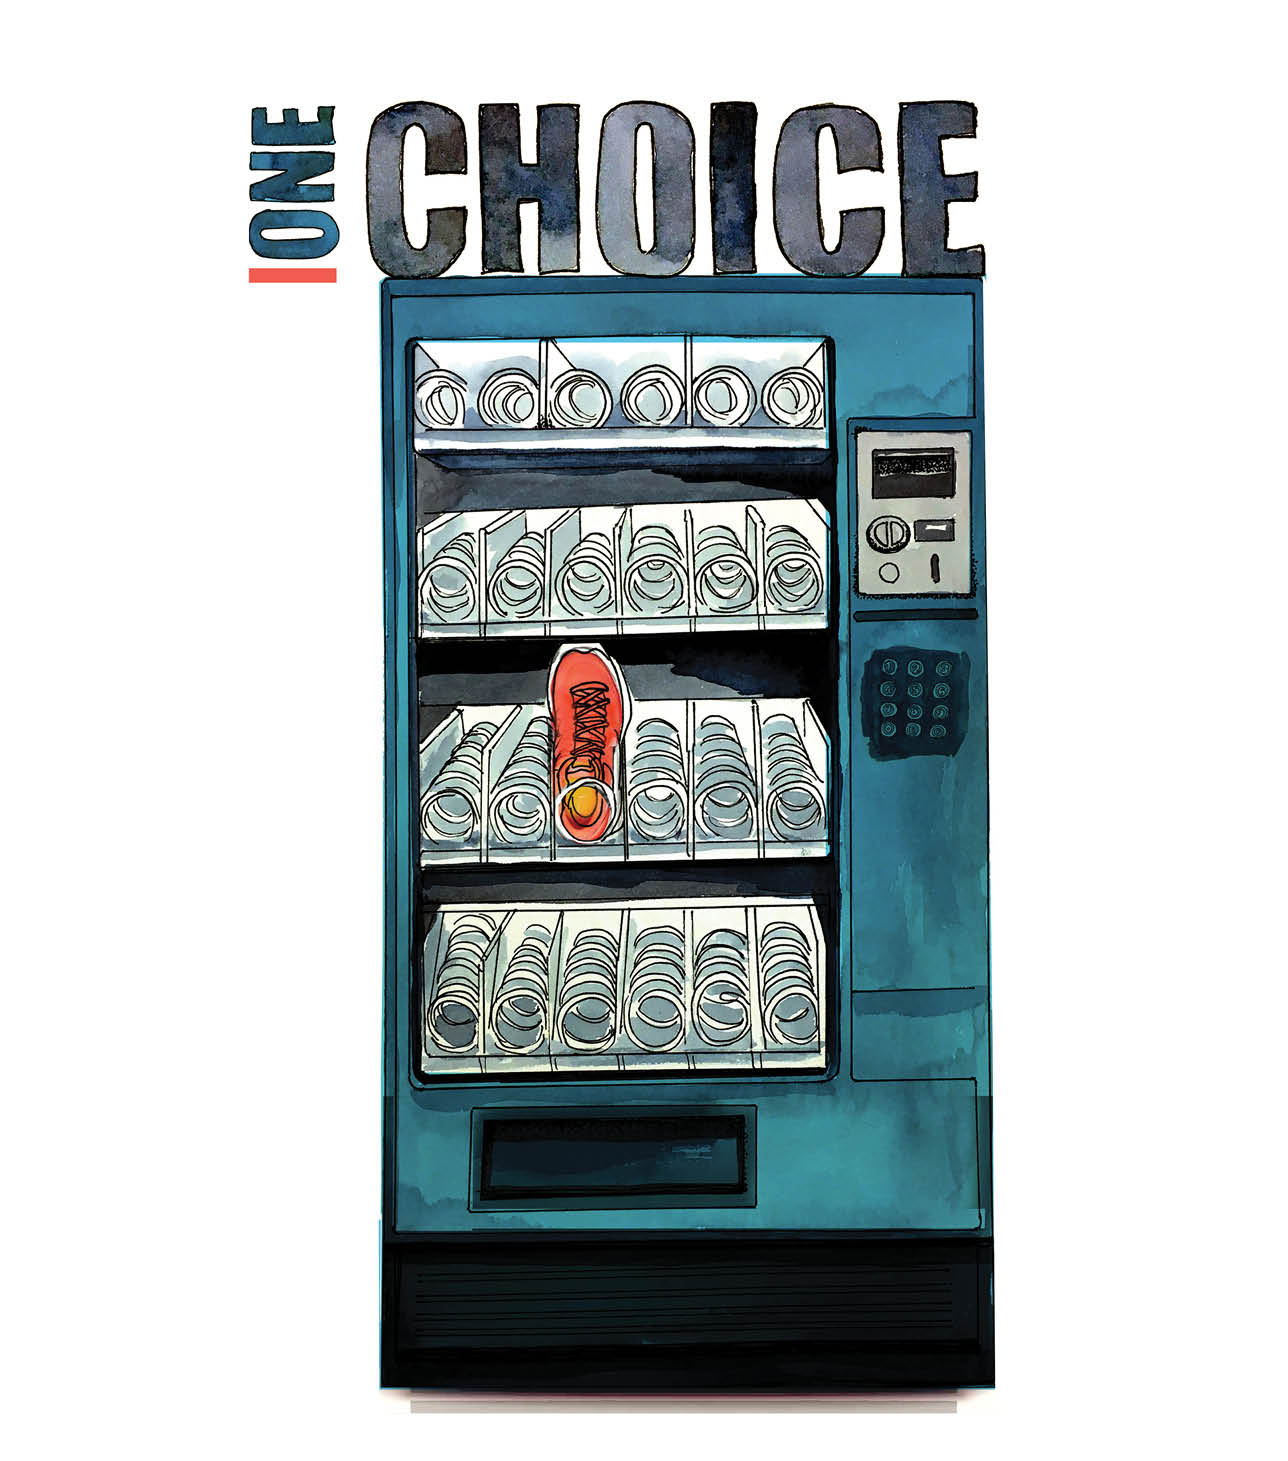 One Choice. An illustration of a vending machine with a sneaker as the only vending choice.